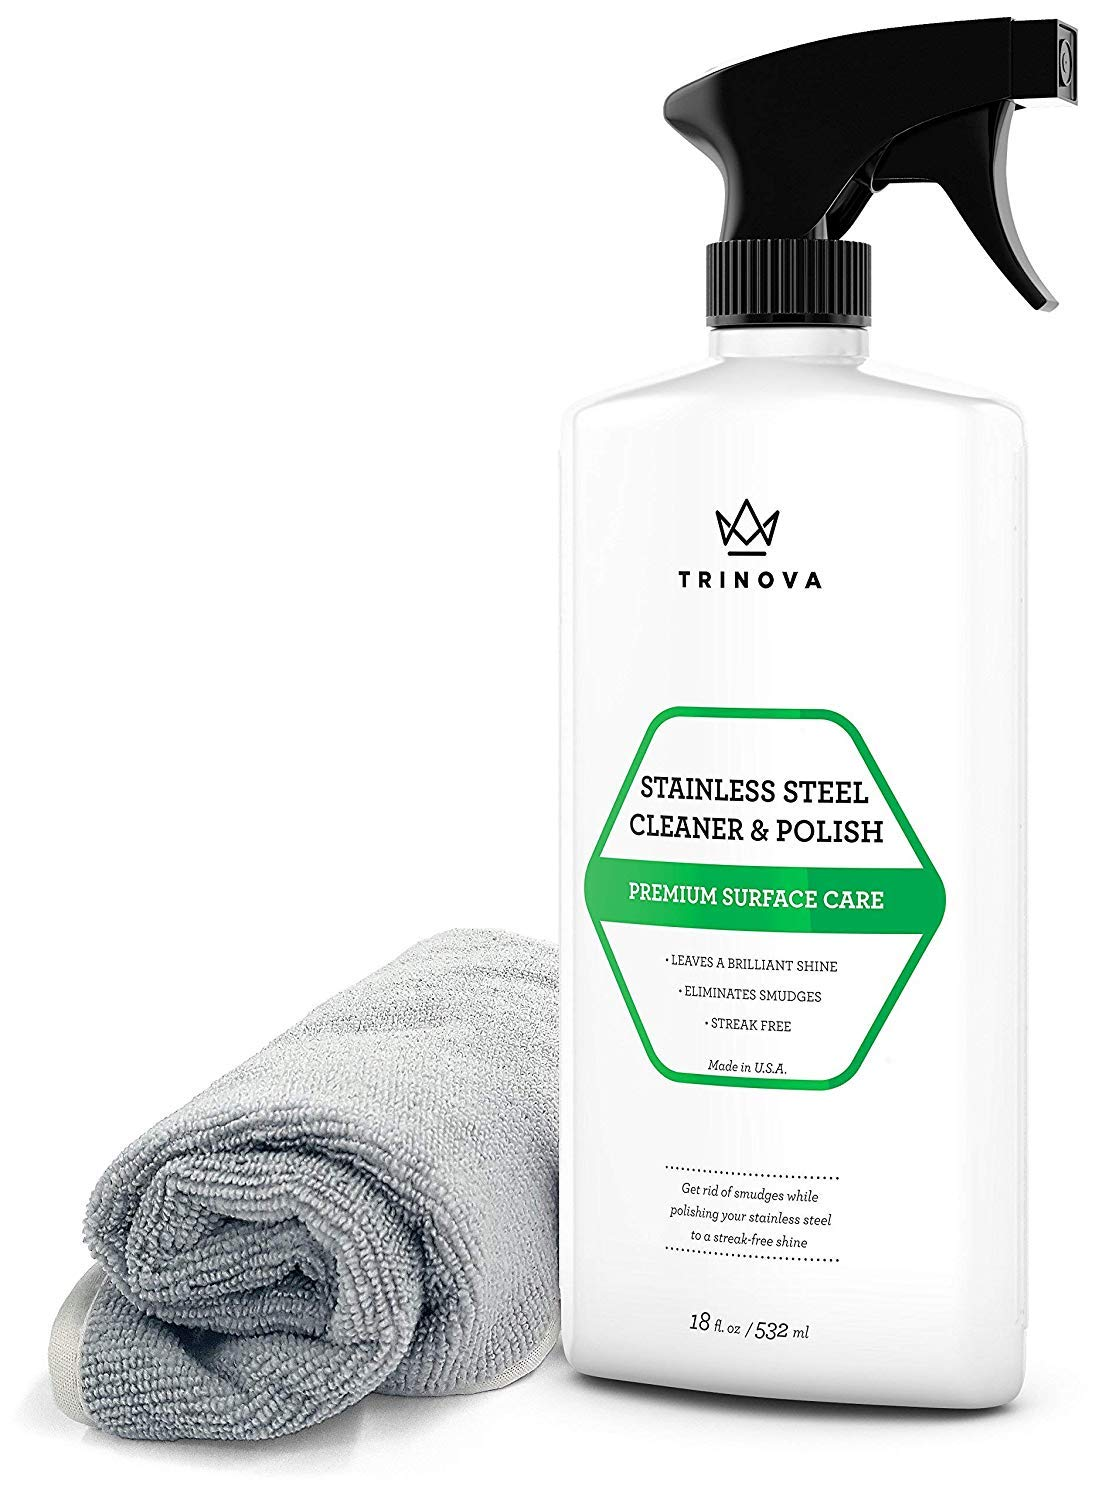 TriNova Stainless Steel Cleaner and Polish for Commercial Refrigerators with Microfiber Cleaning Cloth. Cleaning Spray for Appliances, Fridge, Microwave Oven, Kitchen. 16oz